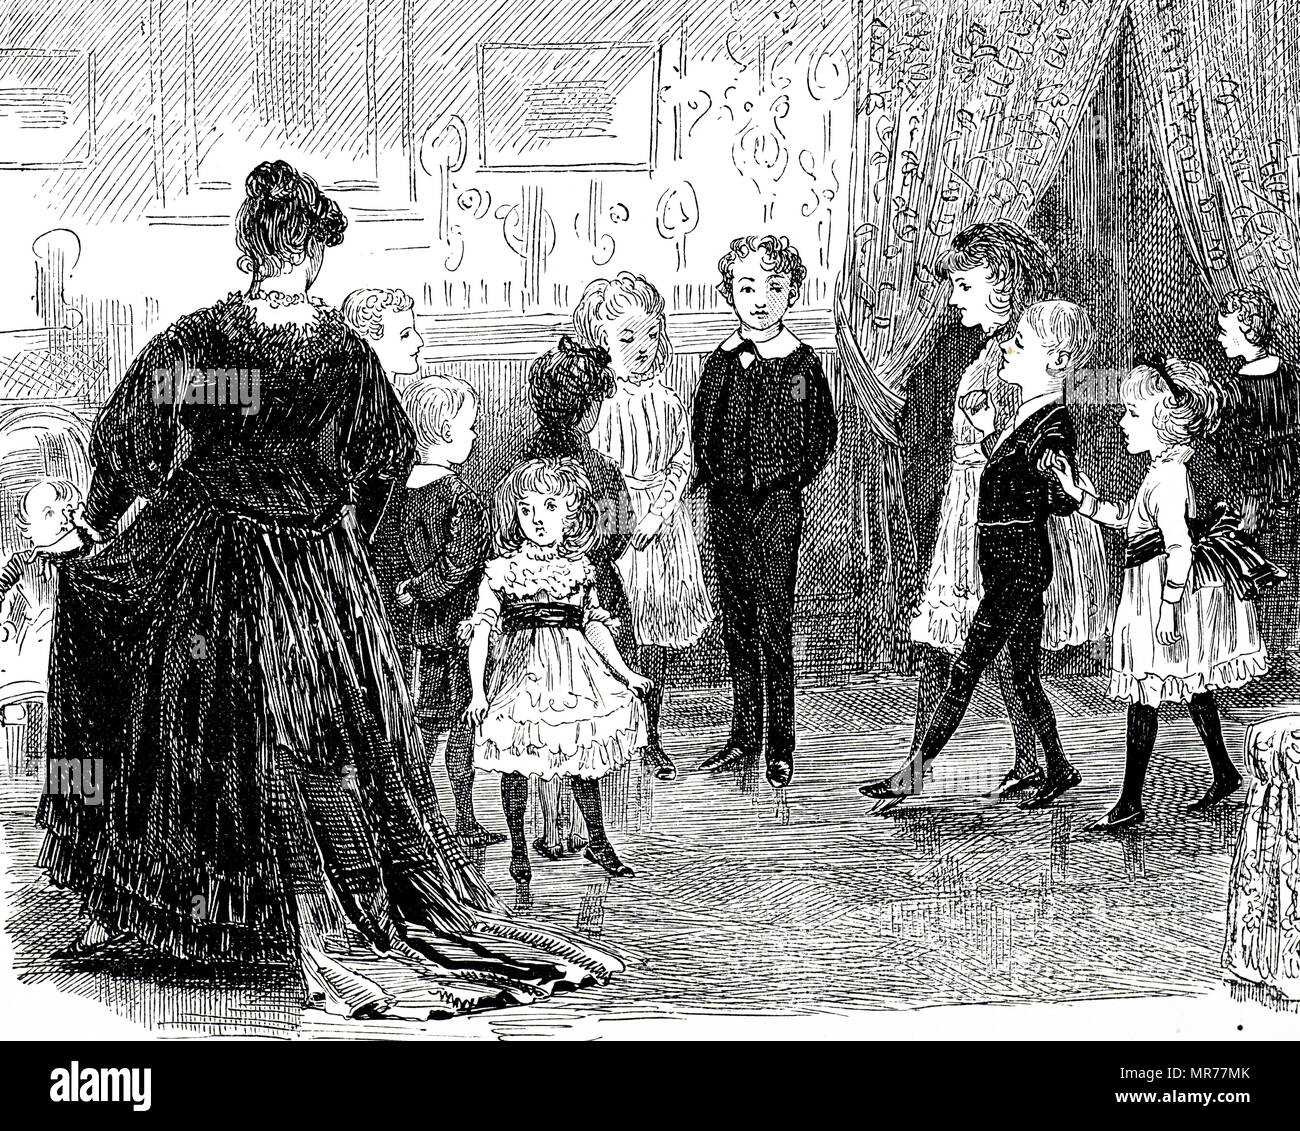 Engraving depicting children at a dancing lesson. Dated 19th century - Stock Image